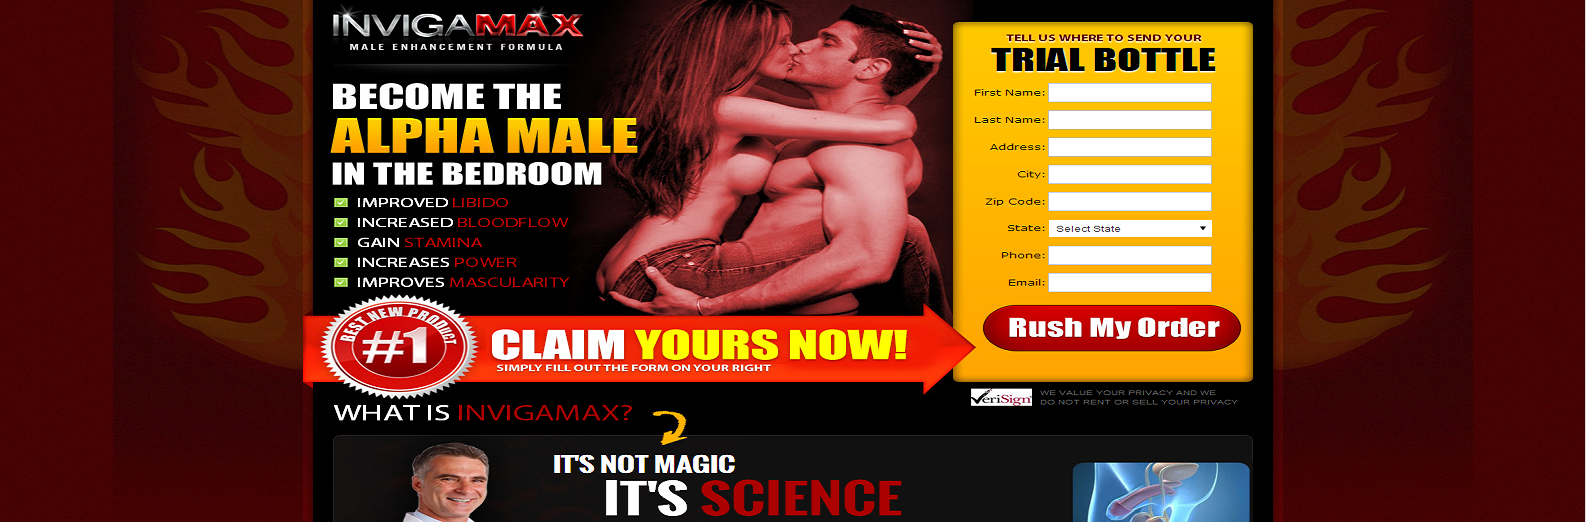 InvigaMax-free-trial-bottle-sample-basis-scam-review-results-trial-package-herbal-supplement-fake-product-item-results-become-the-alpha-male